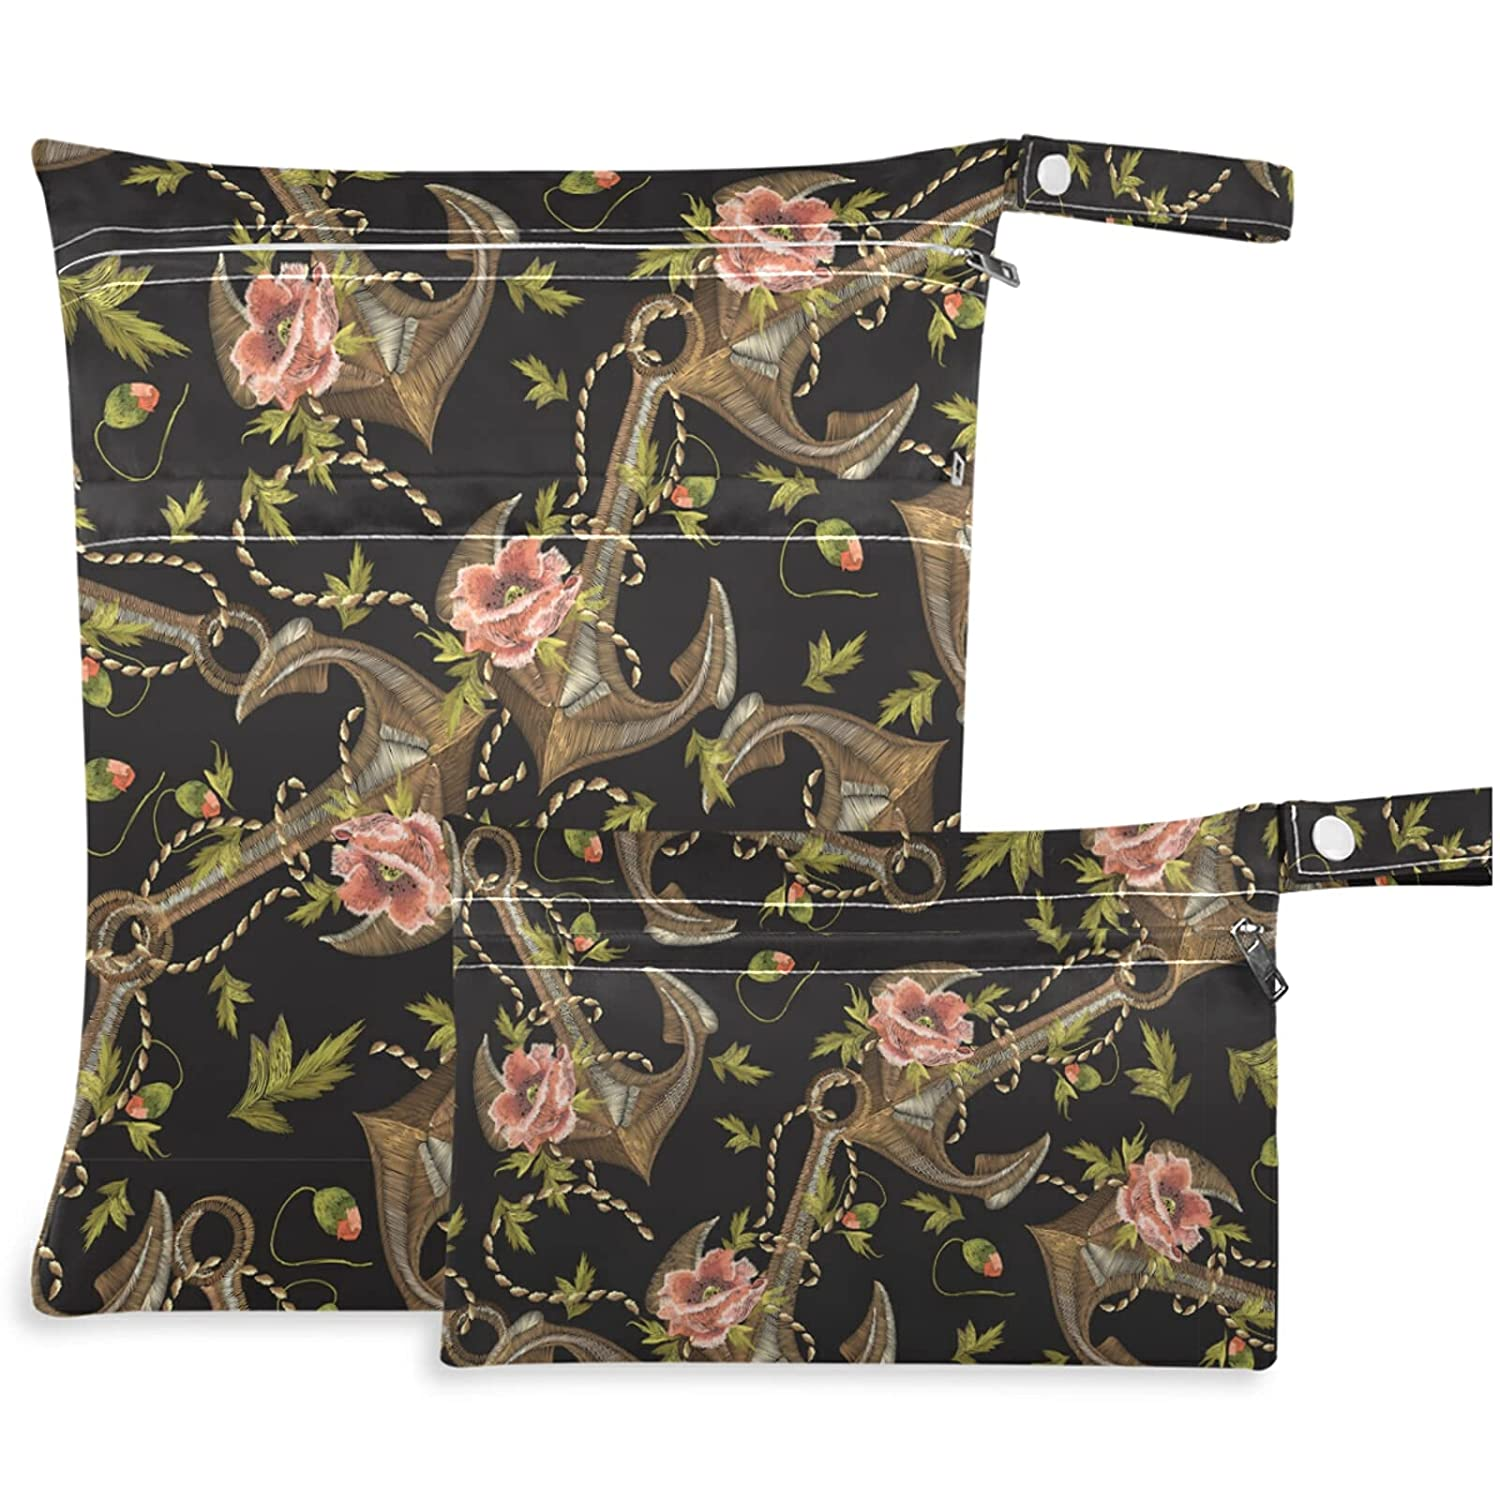 visesunny Vintage Anchor Flower 2Pcs Pocke Wet with Cheap mail Free shipping / New order specialty store Zippered Bag